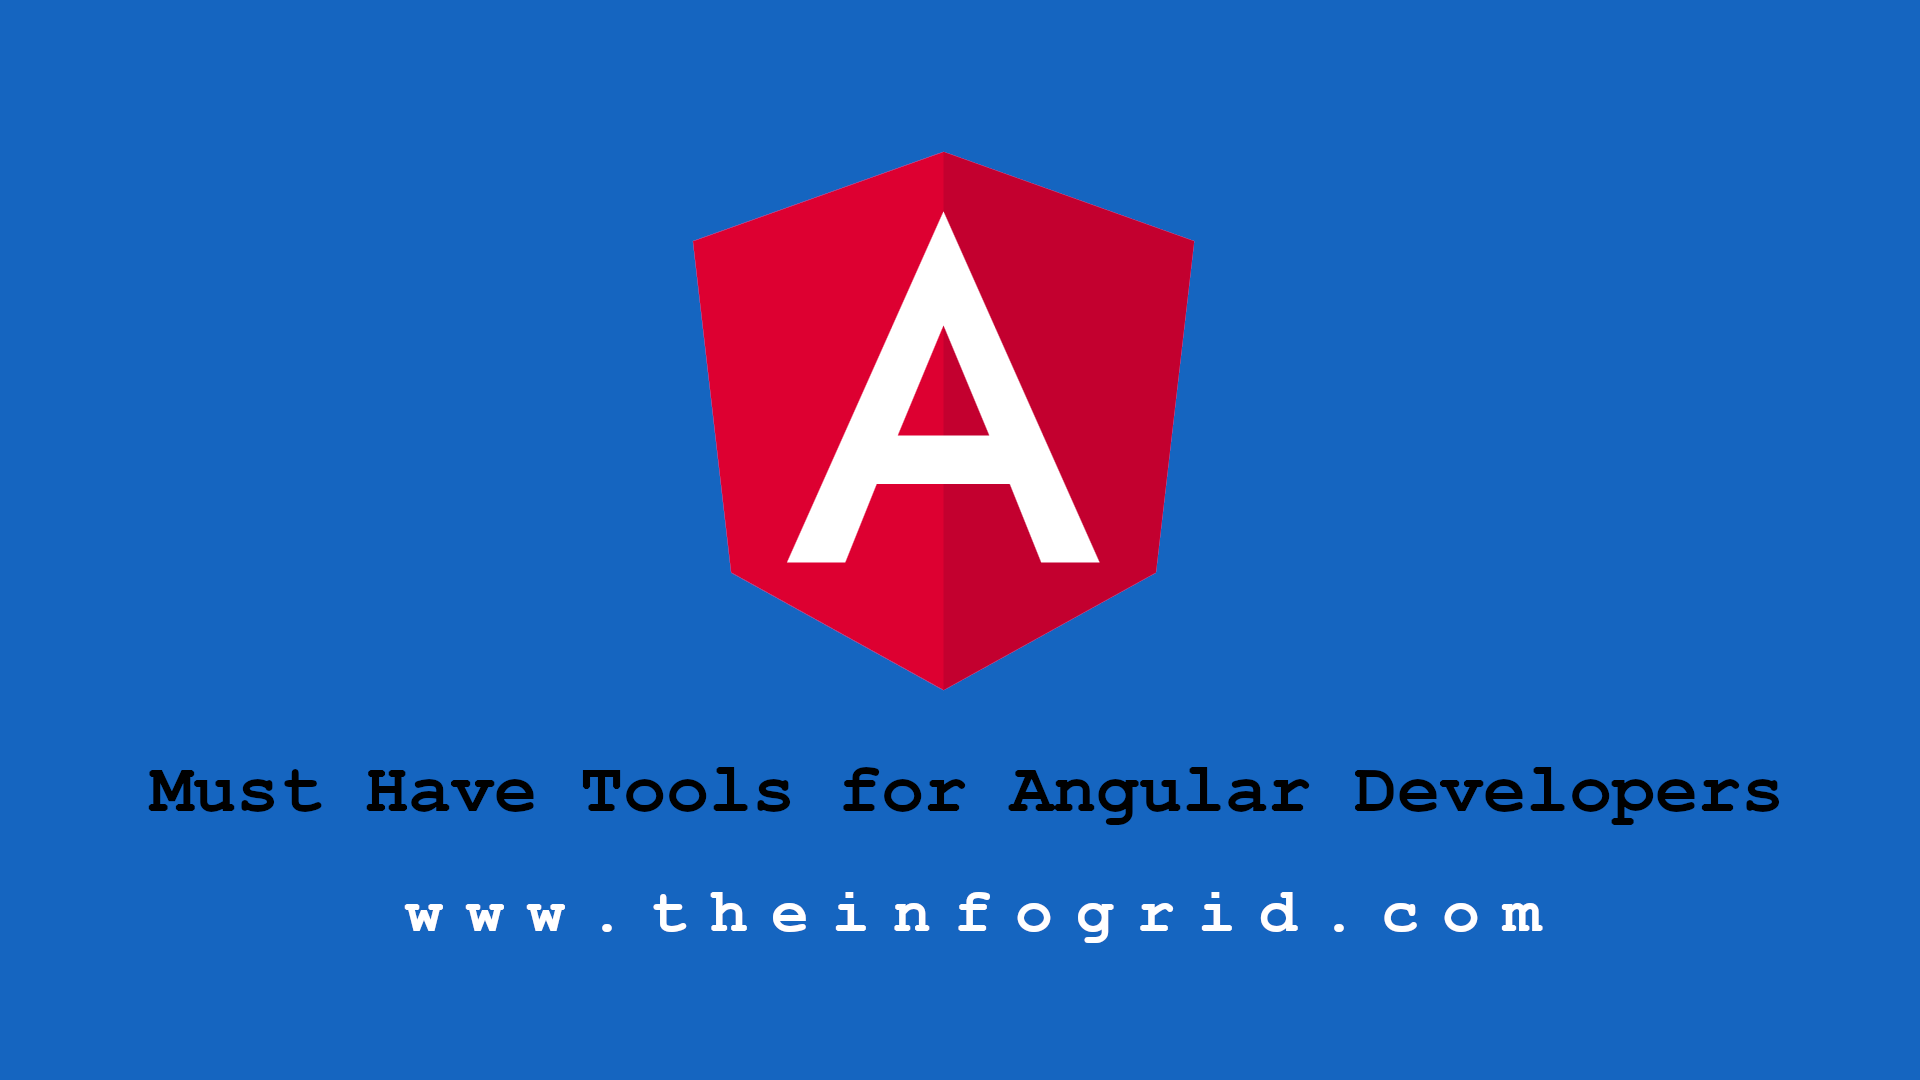 Must Have Tools for Angular Developers 2018